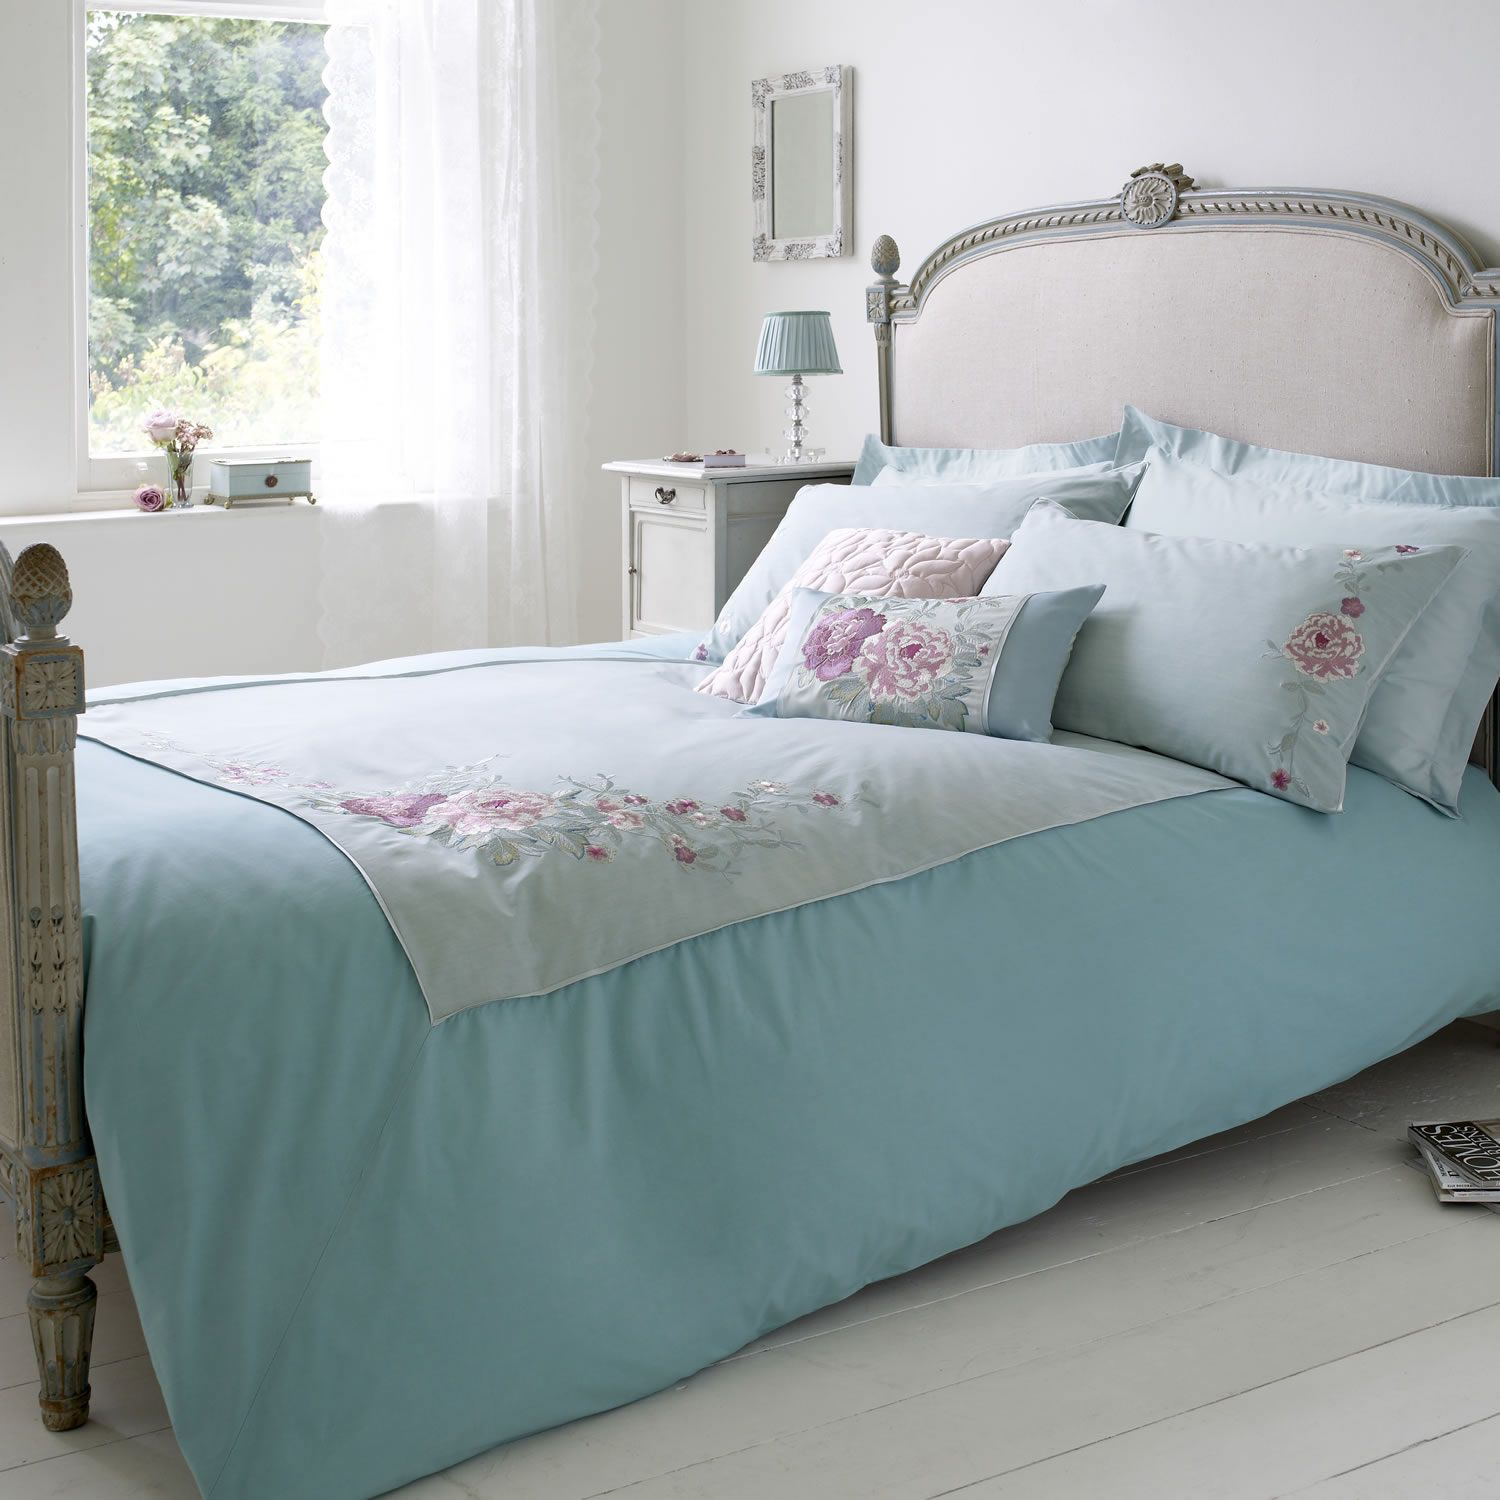 Calming shades Bed, Luxury bedding sets, Bedroom styles